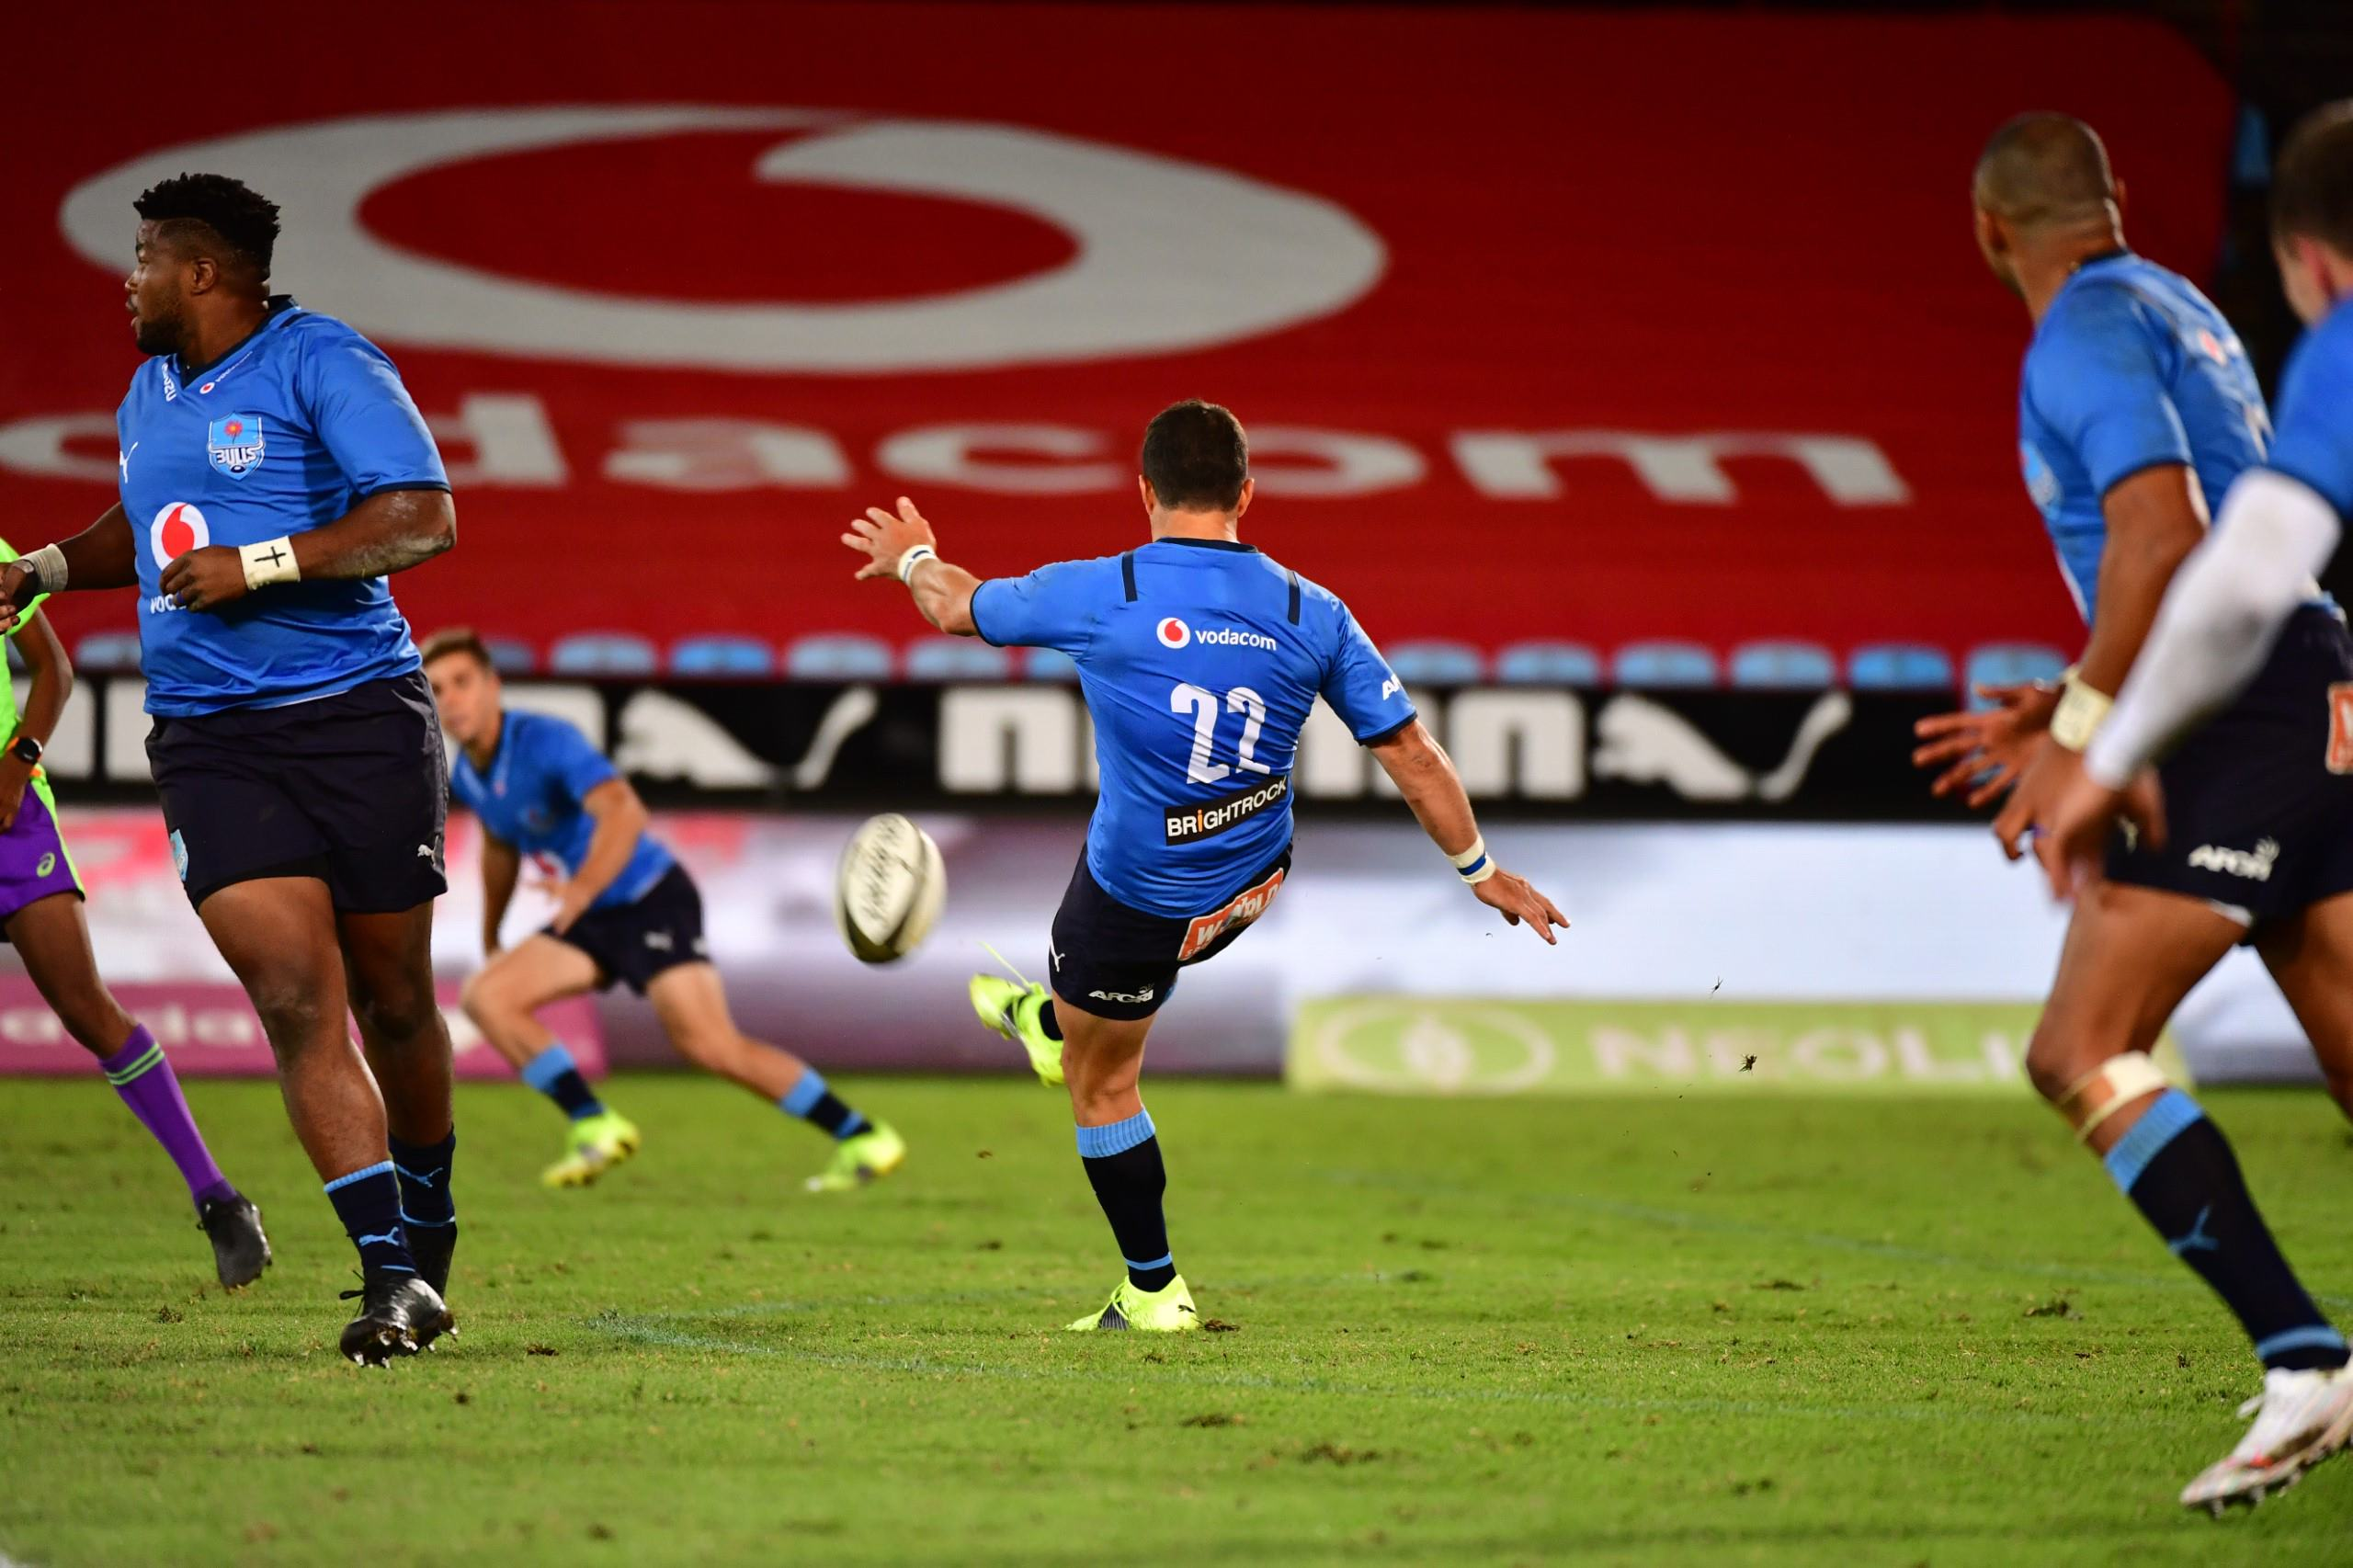 Vodacom Bulls aim for gold at the end of Rainbow